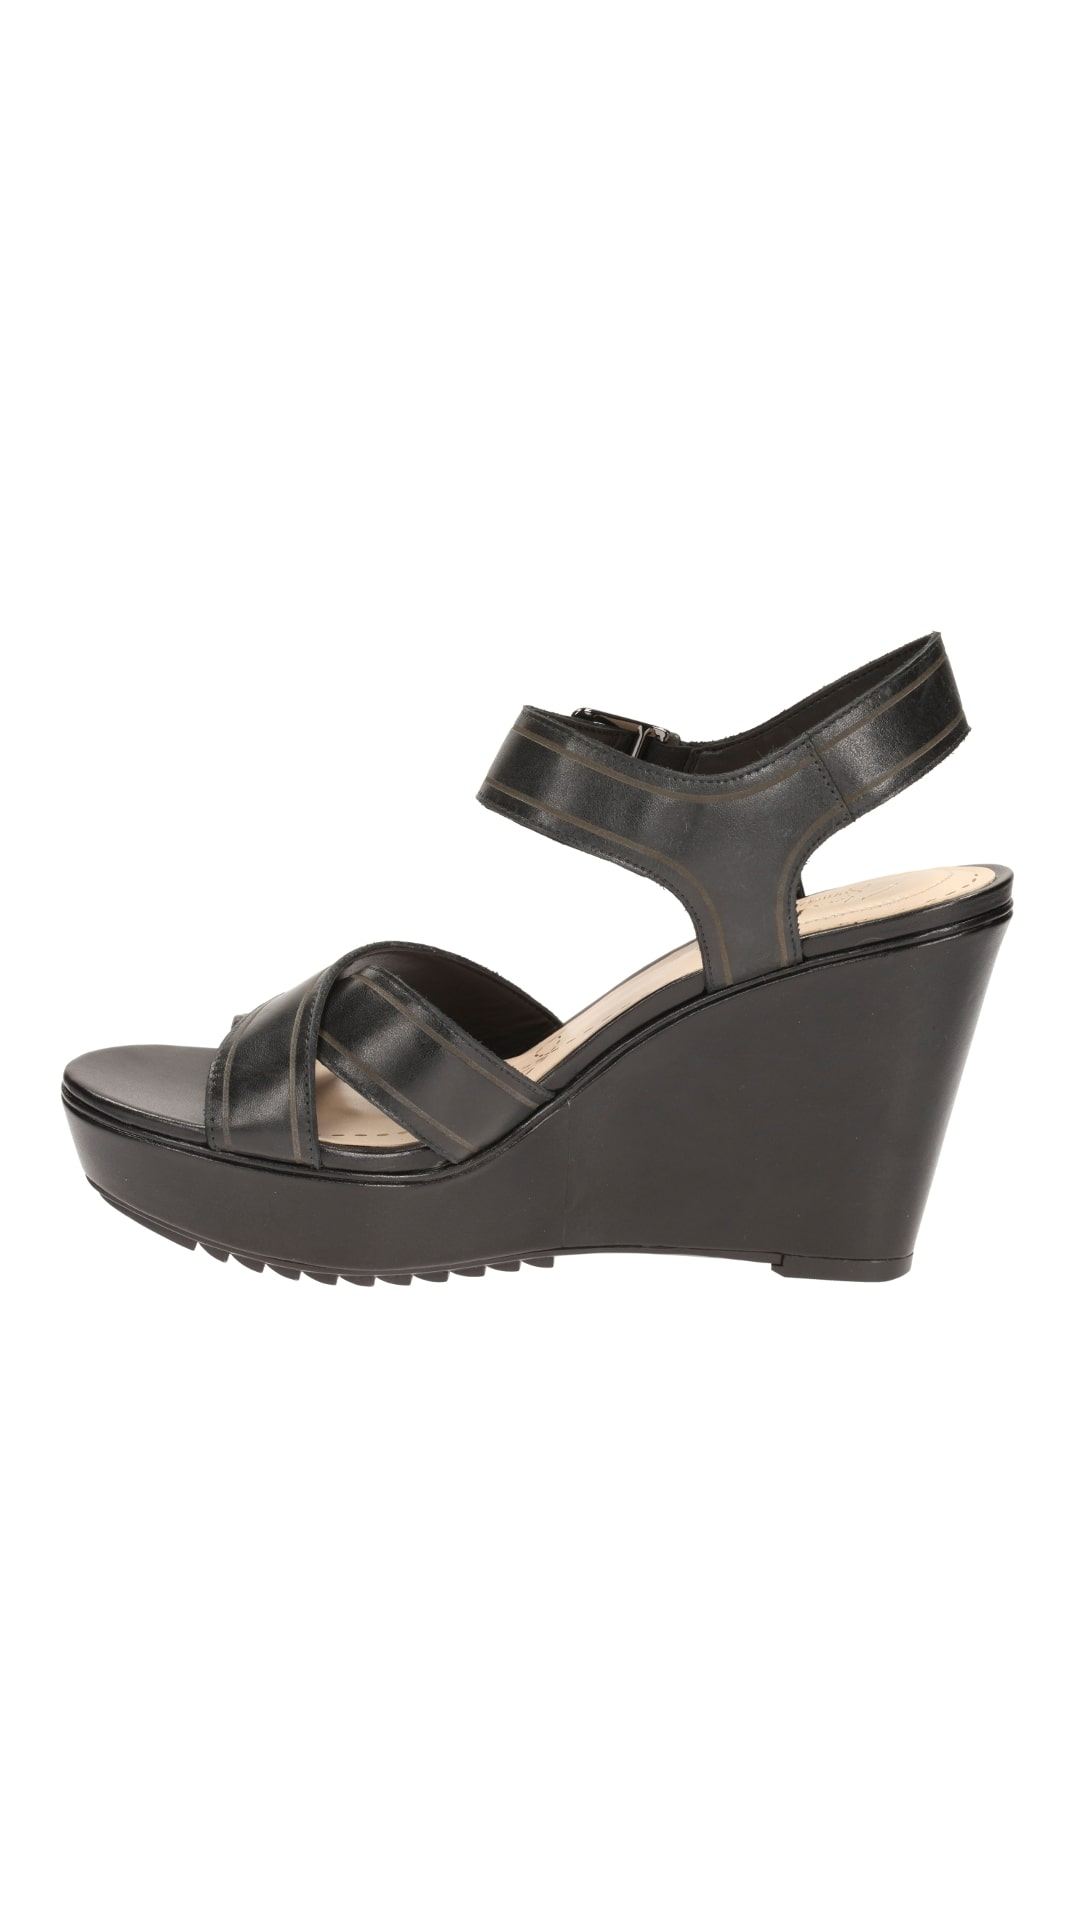 d2652aeea5f1 Buy Clarks Women Scent Sky Black Leather Wedges Online at Low Prices in  India - Paytmmall.com